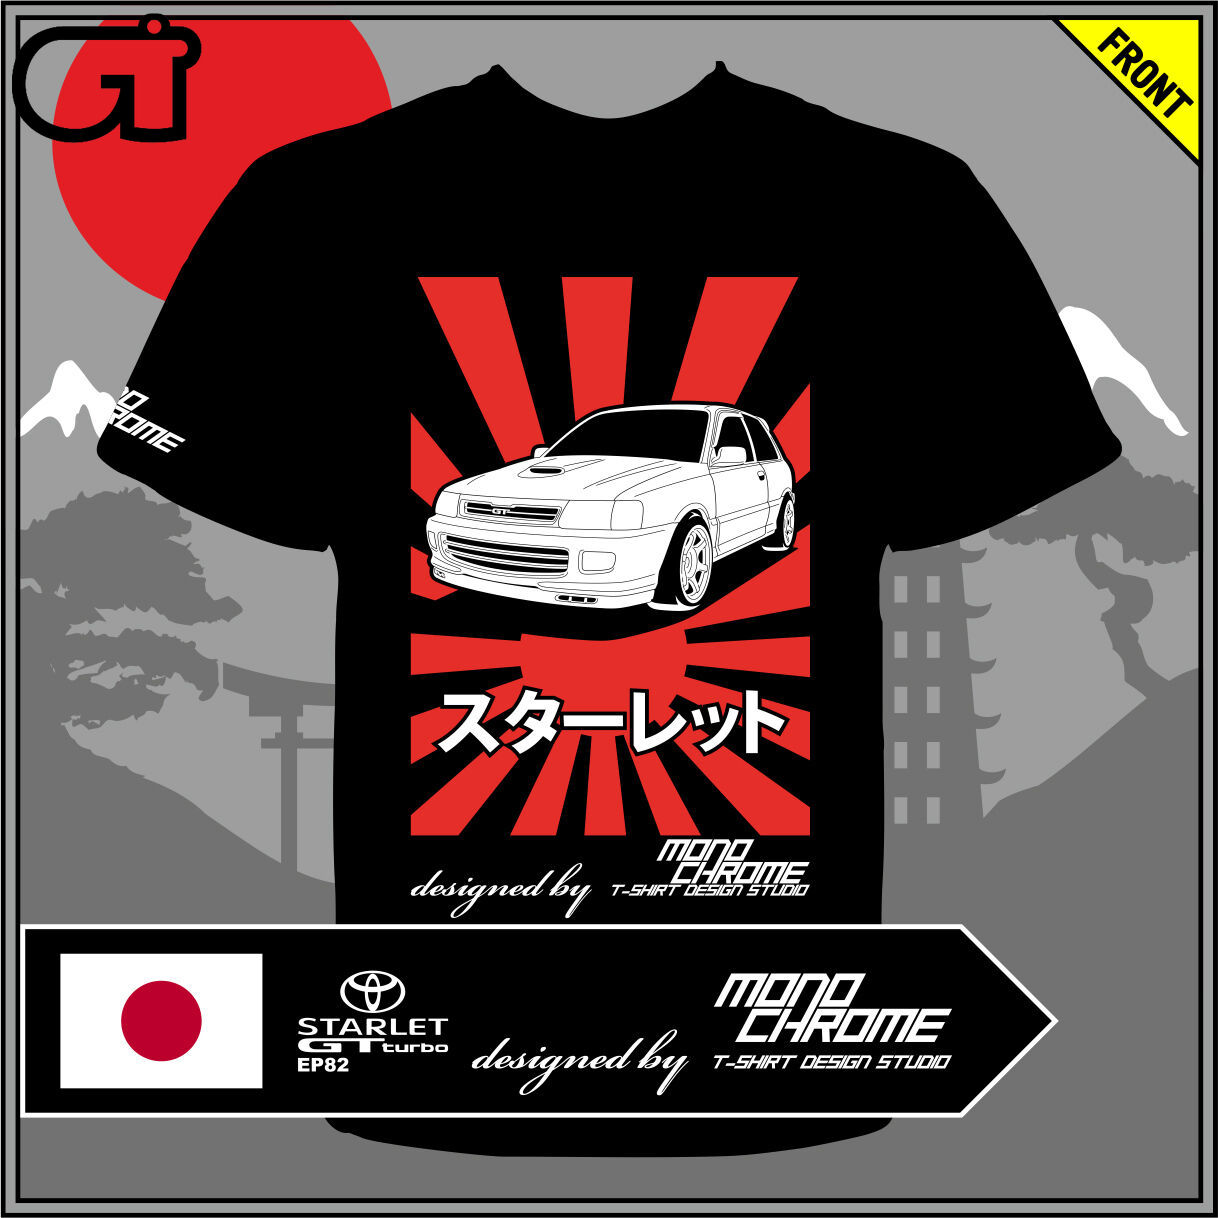 US $9 84 20% OFF|GT shirt Toyota Starlet GT turbo EP82 Tshirt tee-in  T-Shirts from Men's Clothing on Aliexpress com | Alibaba Group